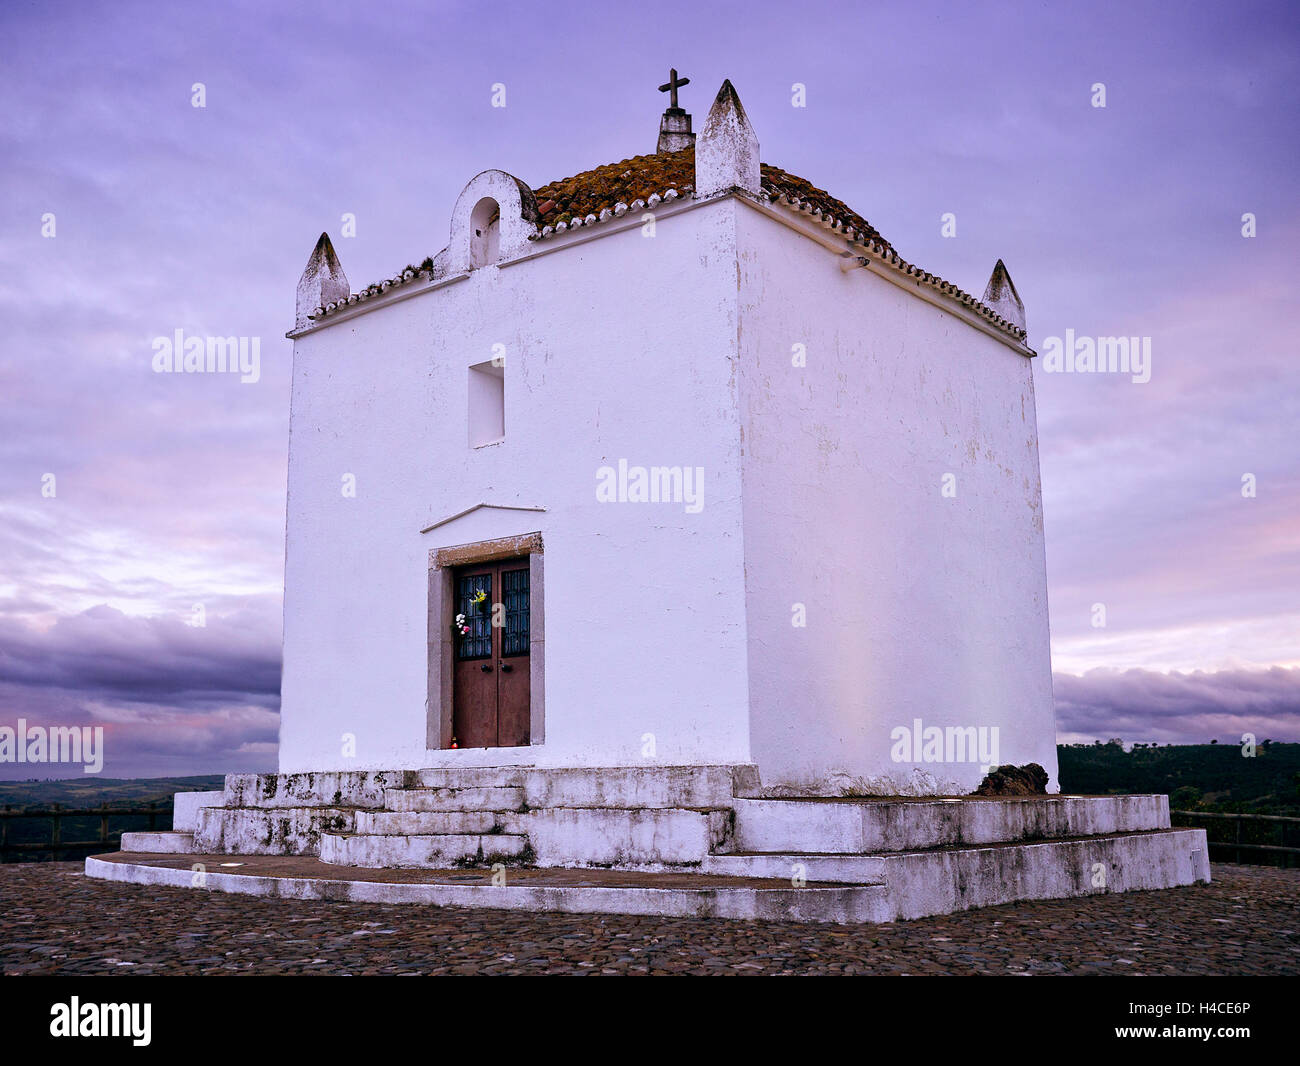 Small band in the hinterland Portugal - Stock Image